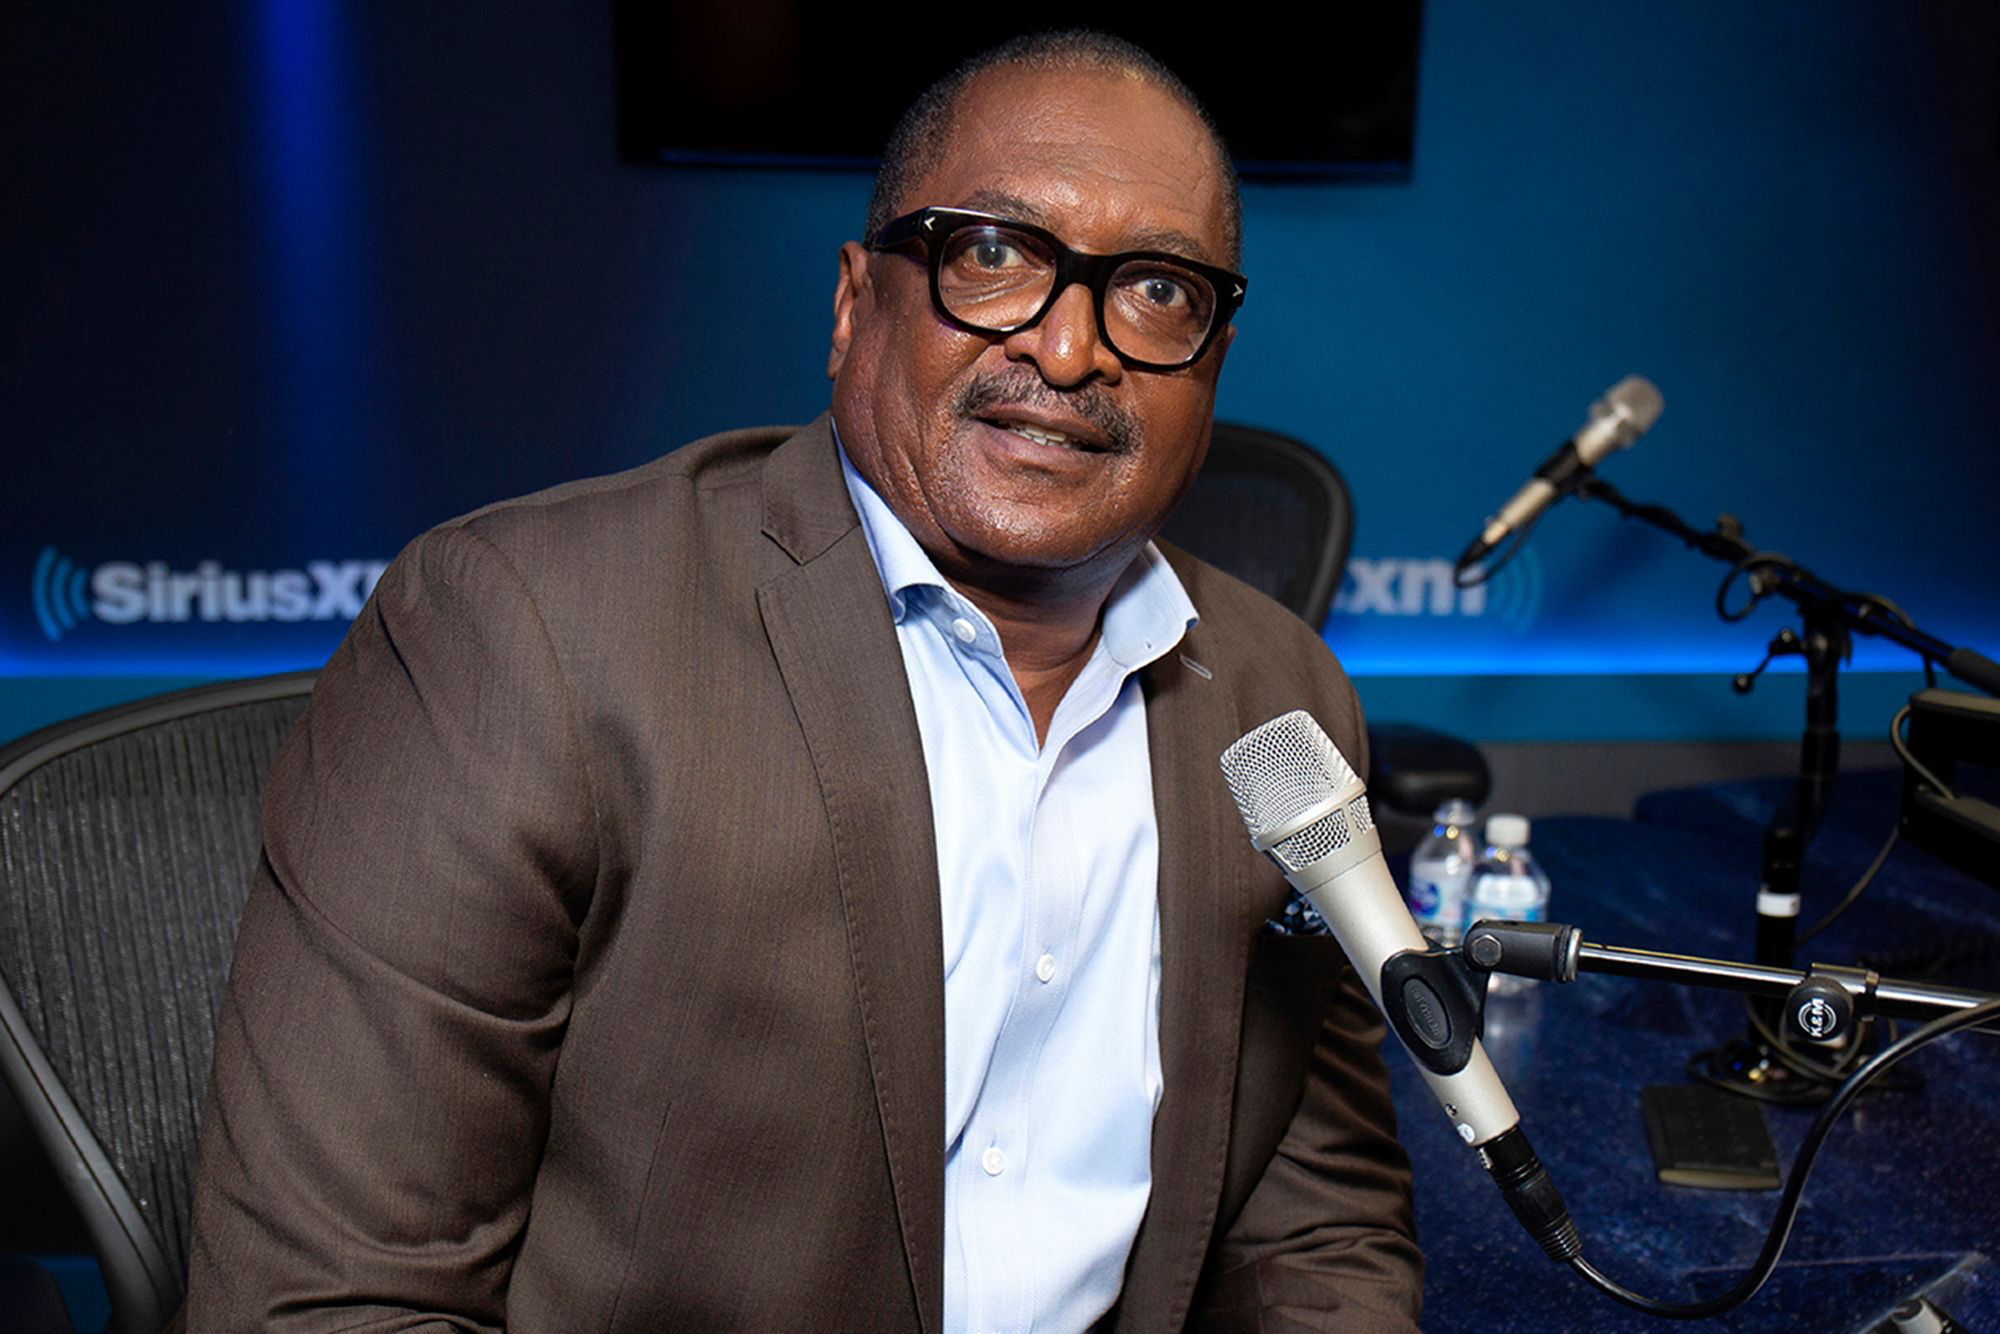 Mathew Knowles Retires from the Music Industry.